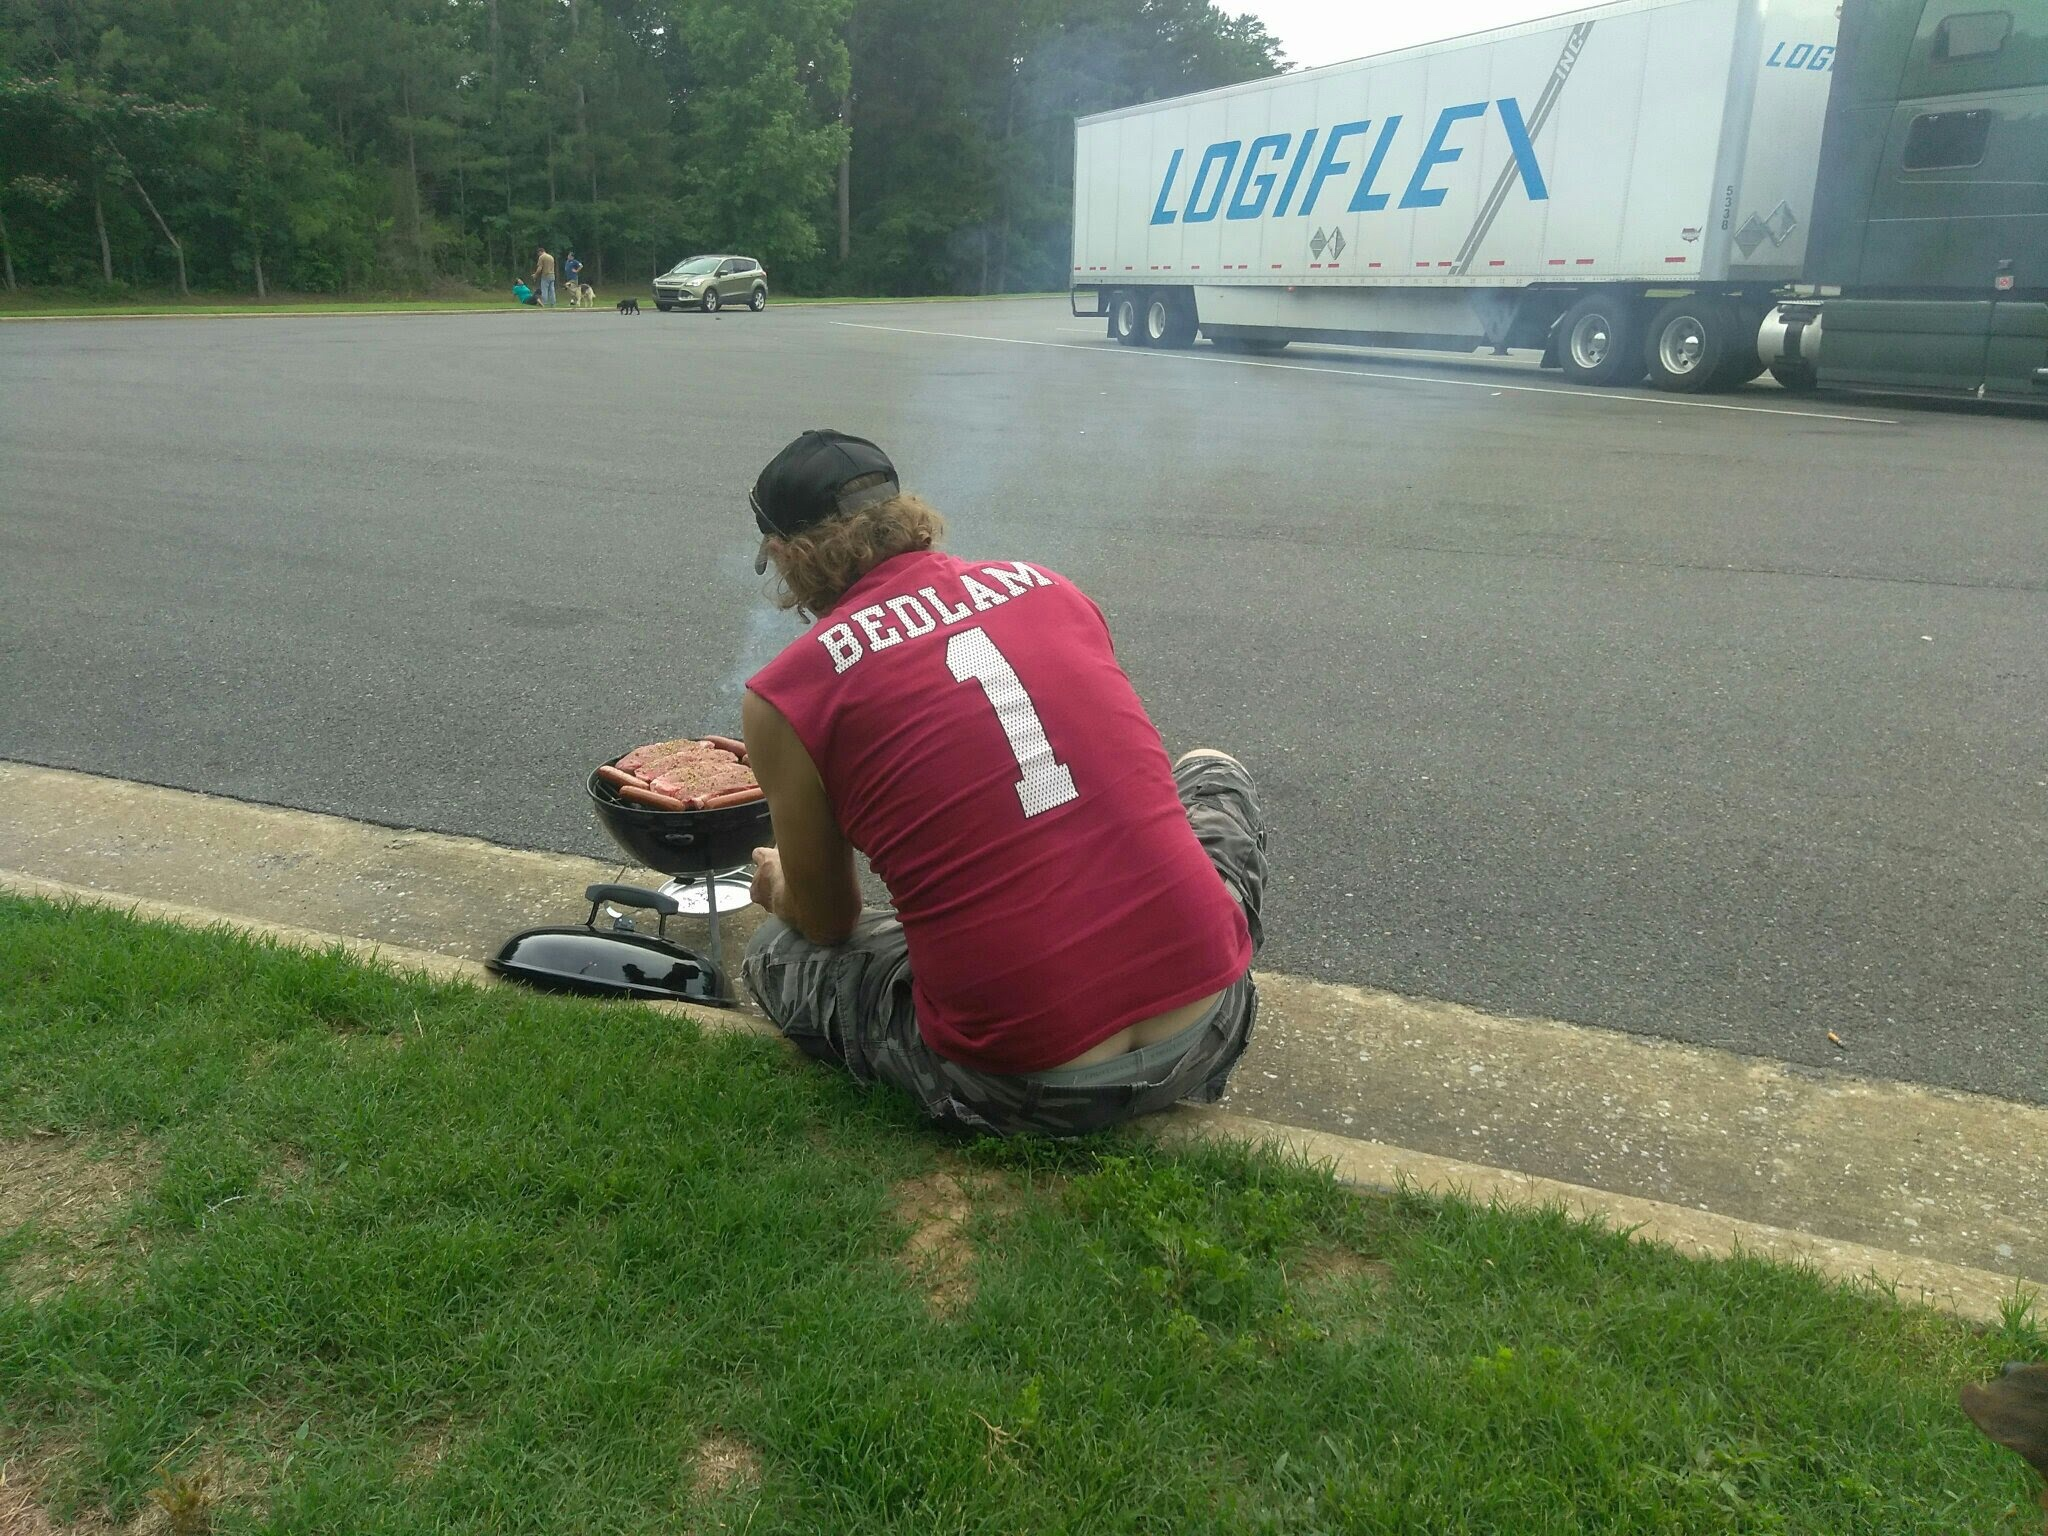 Driver having barbecue on a rest area